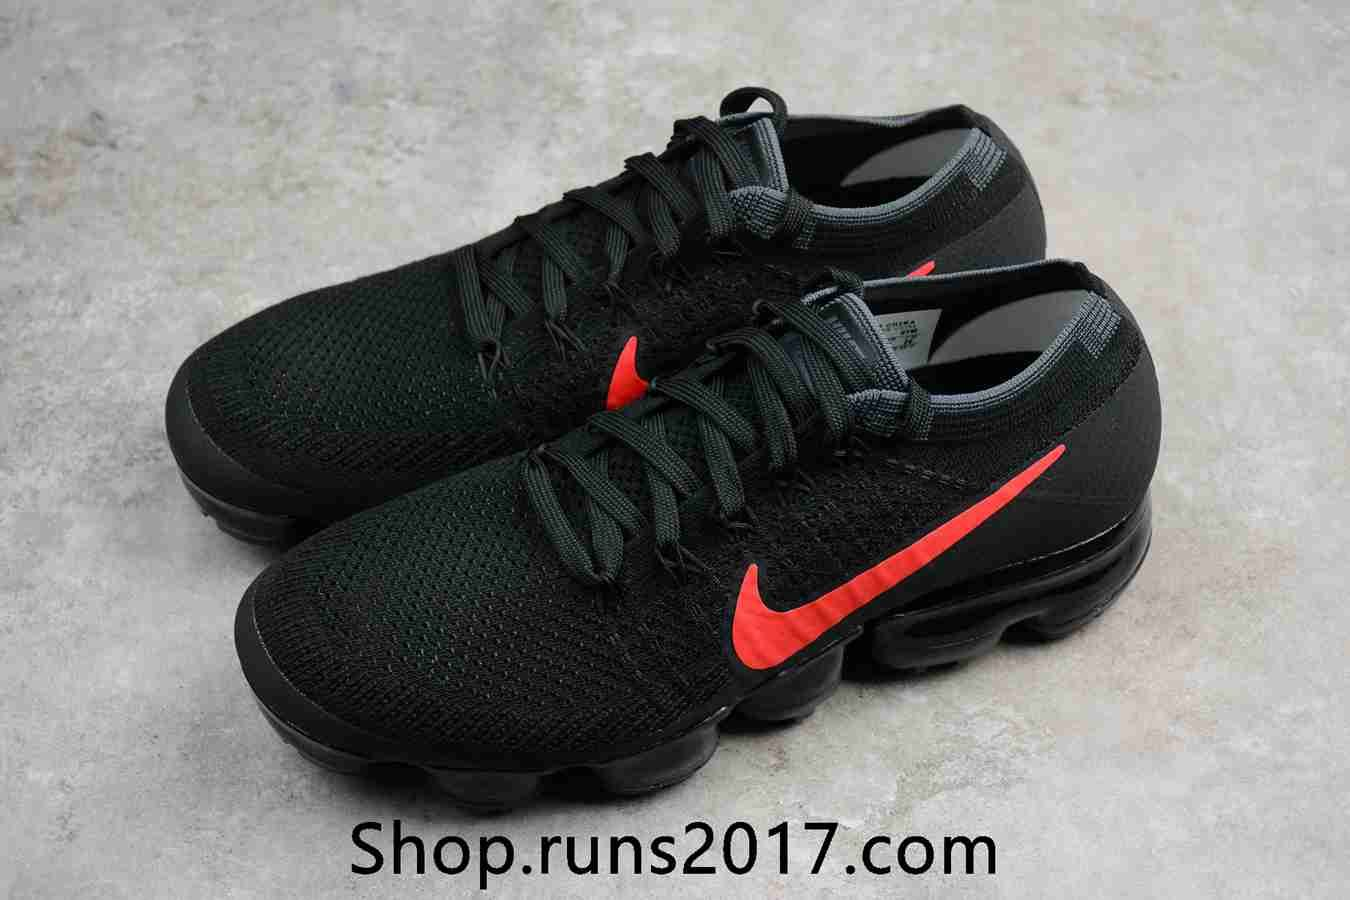 a5fe4167b66 New Nike Air VaporMax 2018 Flyknit Black Red Tick Women Men